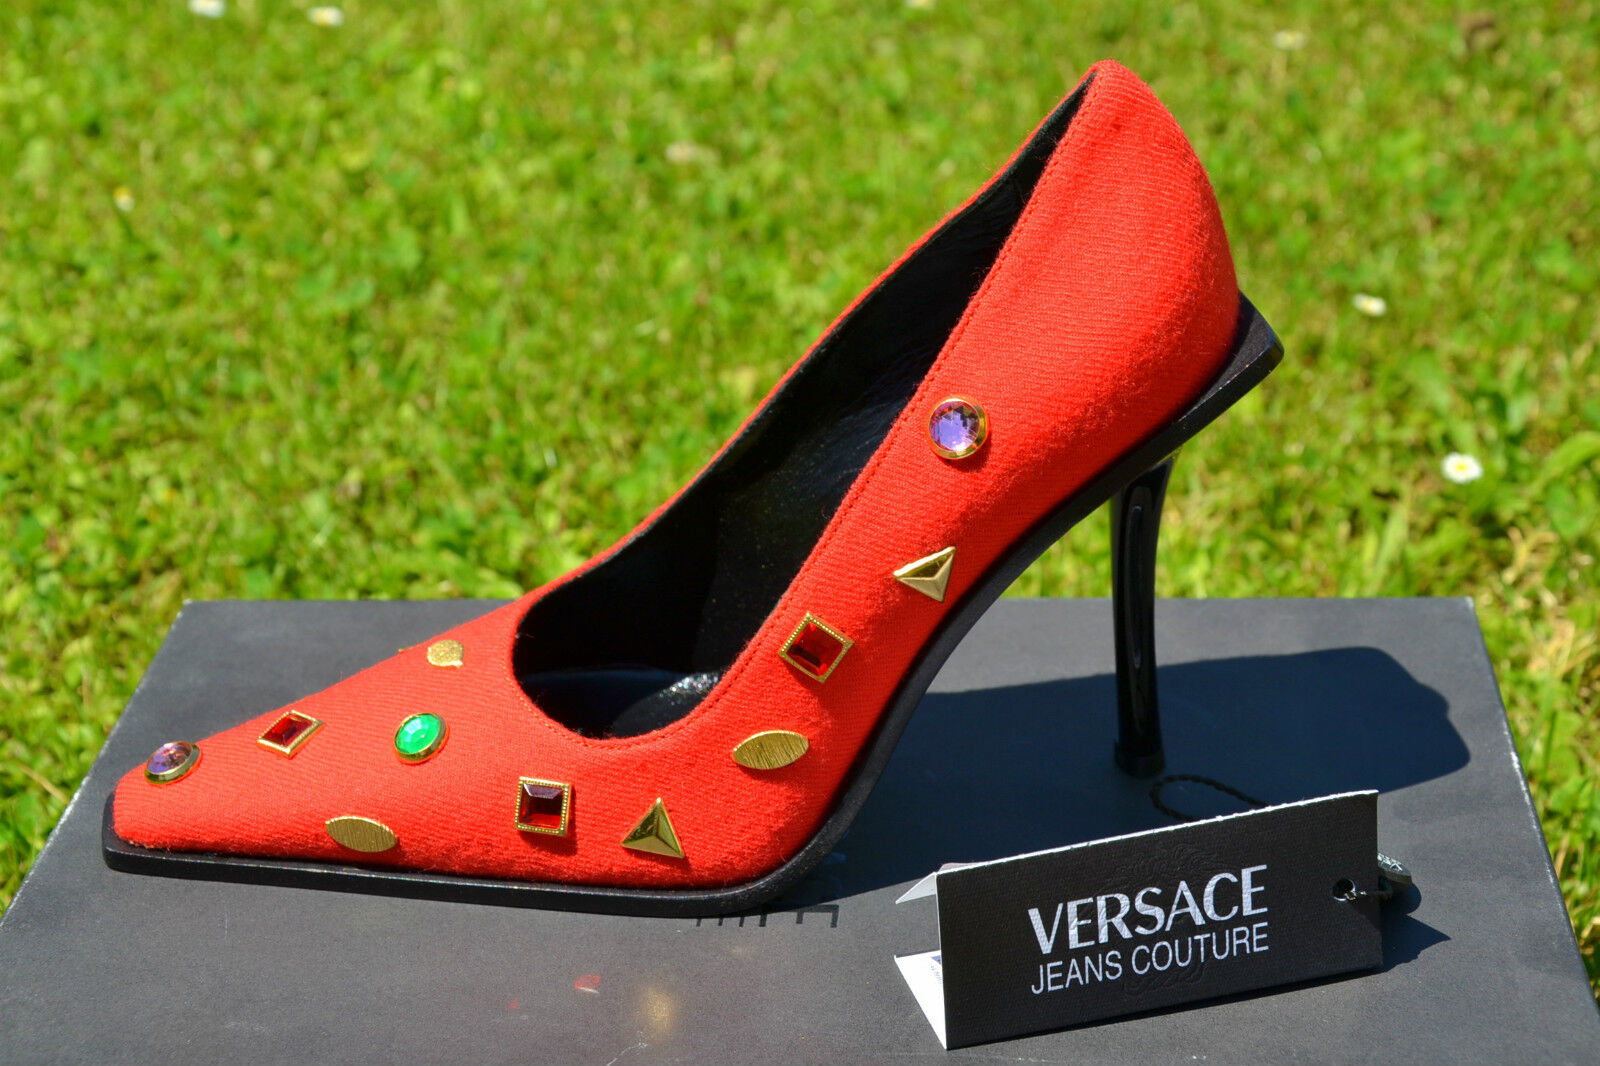 VERSACE New Woman Vtg RARE RARE RARE COLLECTABLE Jewel Lux High Heel Wool shoes sz 36 UK 3 1092ba